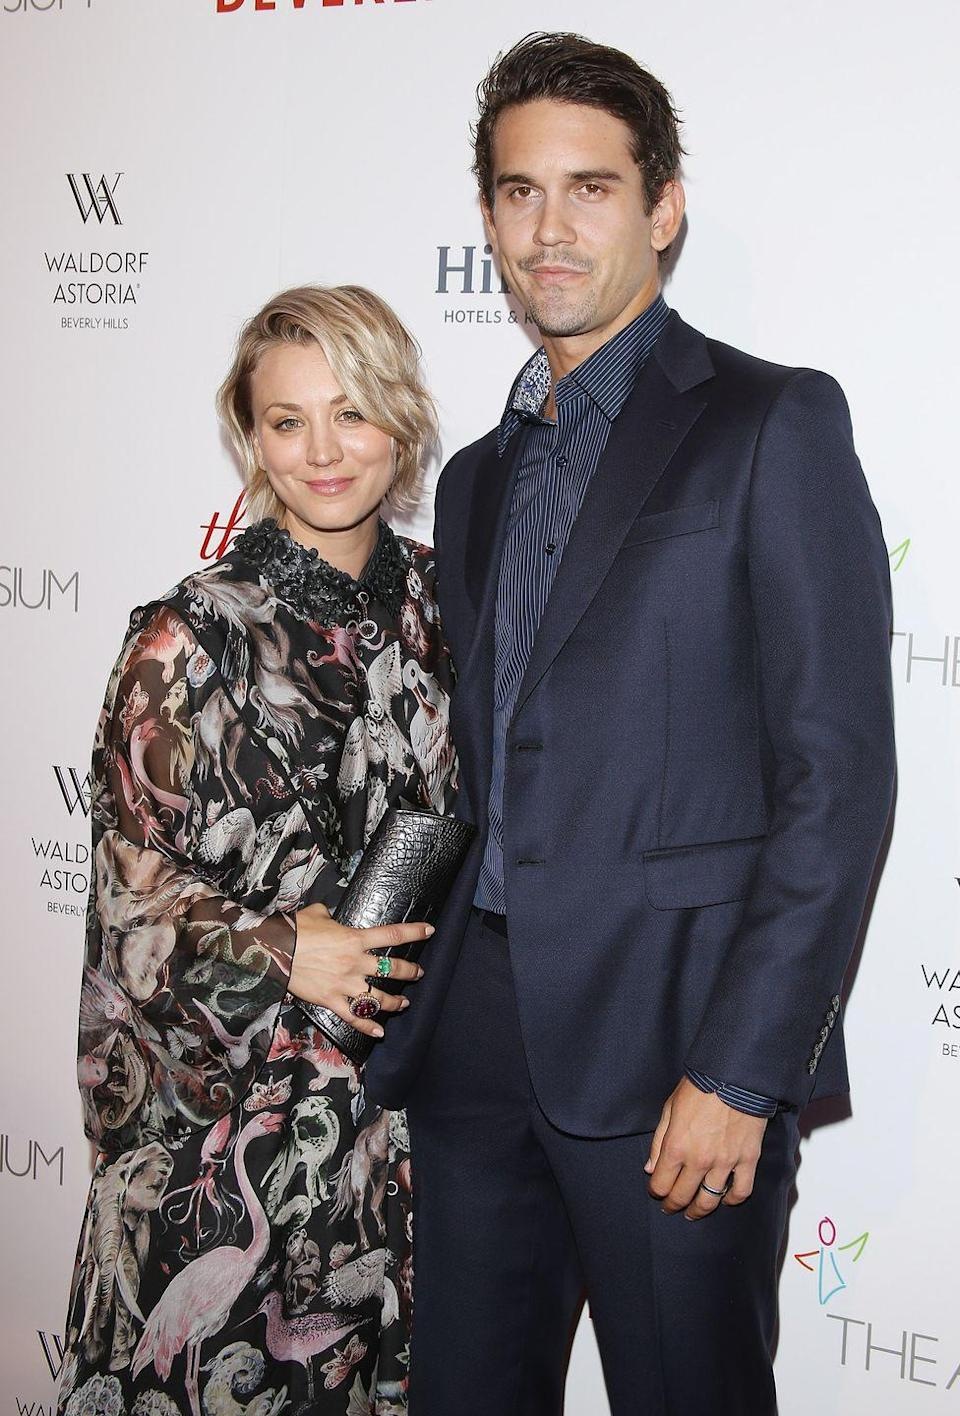 """<p><em>Big Bang Theory</em> star Kaley married tennis pro Ryan in 2013 after only three months of dating. The marriage lasted 21 months, and it sounds like it didn't end on the best of terms. <a href=""""https://www.cosmopolitan.com/entertainment/a19631902/kaley-cuoco-may-2018/"""" rel=""""nofollow noopener"""" target=""""_blank"""" data-ylk=""""slk:Kaley opened up about the marriage to"""" class=""""link rapid-noclick-resp"""">Kaley opened up about the marriage to </a><em><a href=""""https://www.cosmopolitan.com/entertainment/a19631902/kaley-cuoco-may-2018/"""" rel=""""nofollow noopener"""" target=""""_blank"""" data-ylk=""""slk:Cosmopolitan"""" class=""""link rapid-noclick-resp"""">Cosmopolitan</a></em>, saying, """"I married someone the first time who completely changed. The person I ended up with was not the person I originally met. And that wasn't my fault—that was his.""""</p>"""